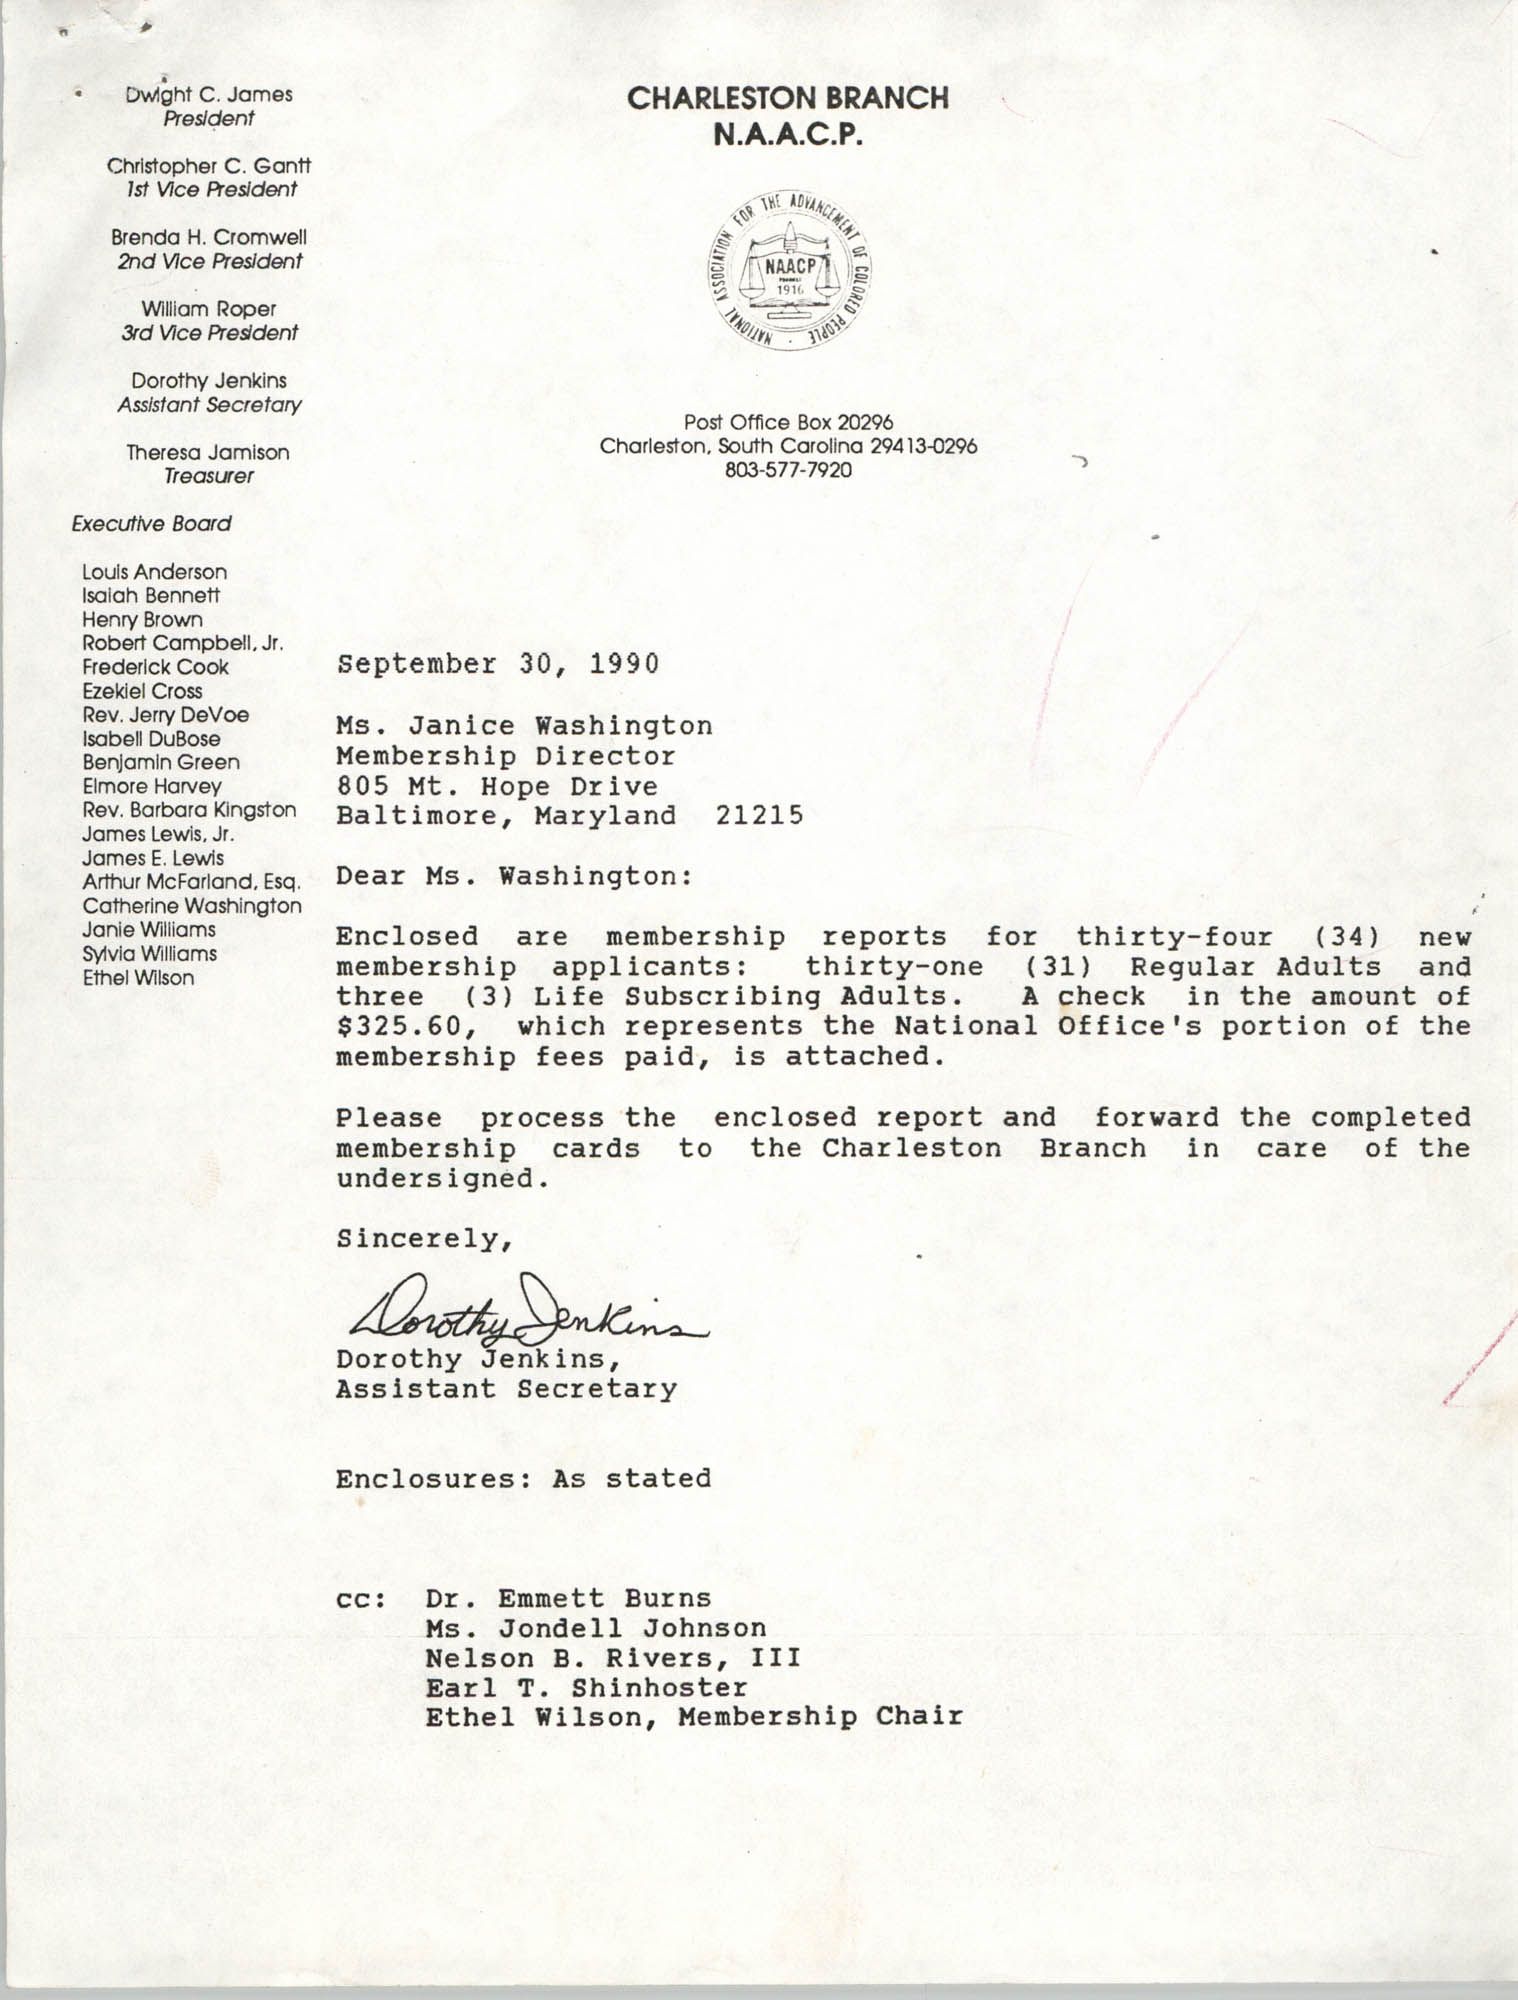 Letter from Dorothy Jenkins to Janice Washington, NAACP, September 30, 1990